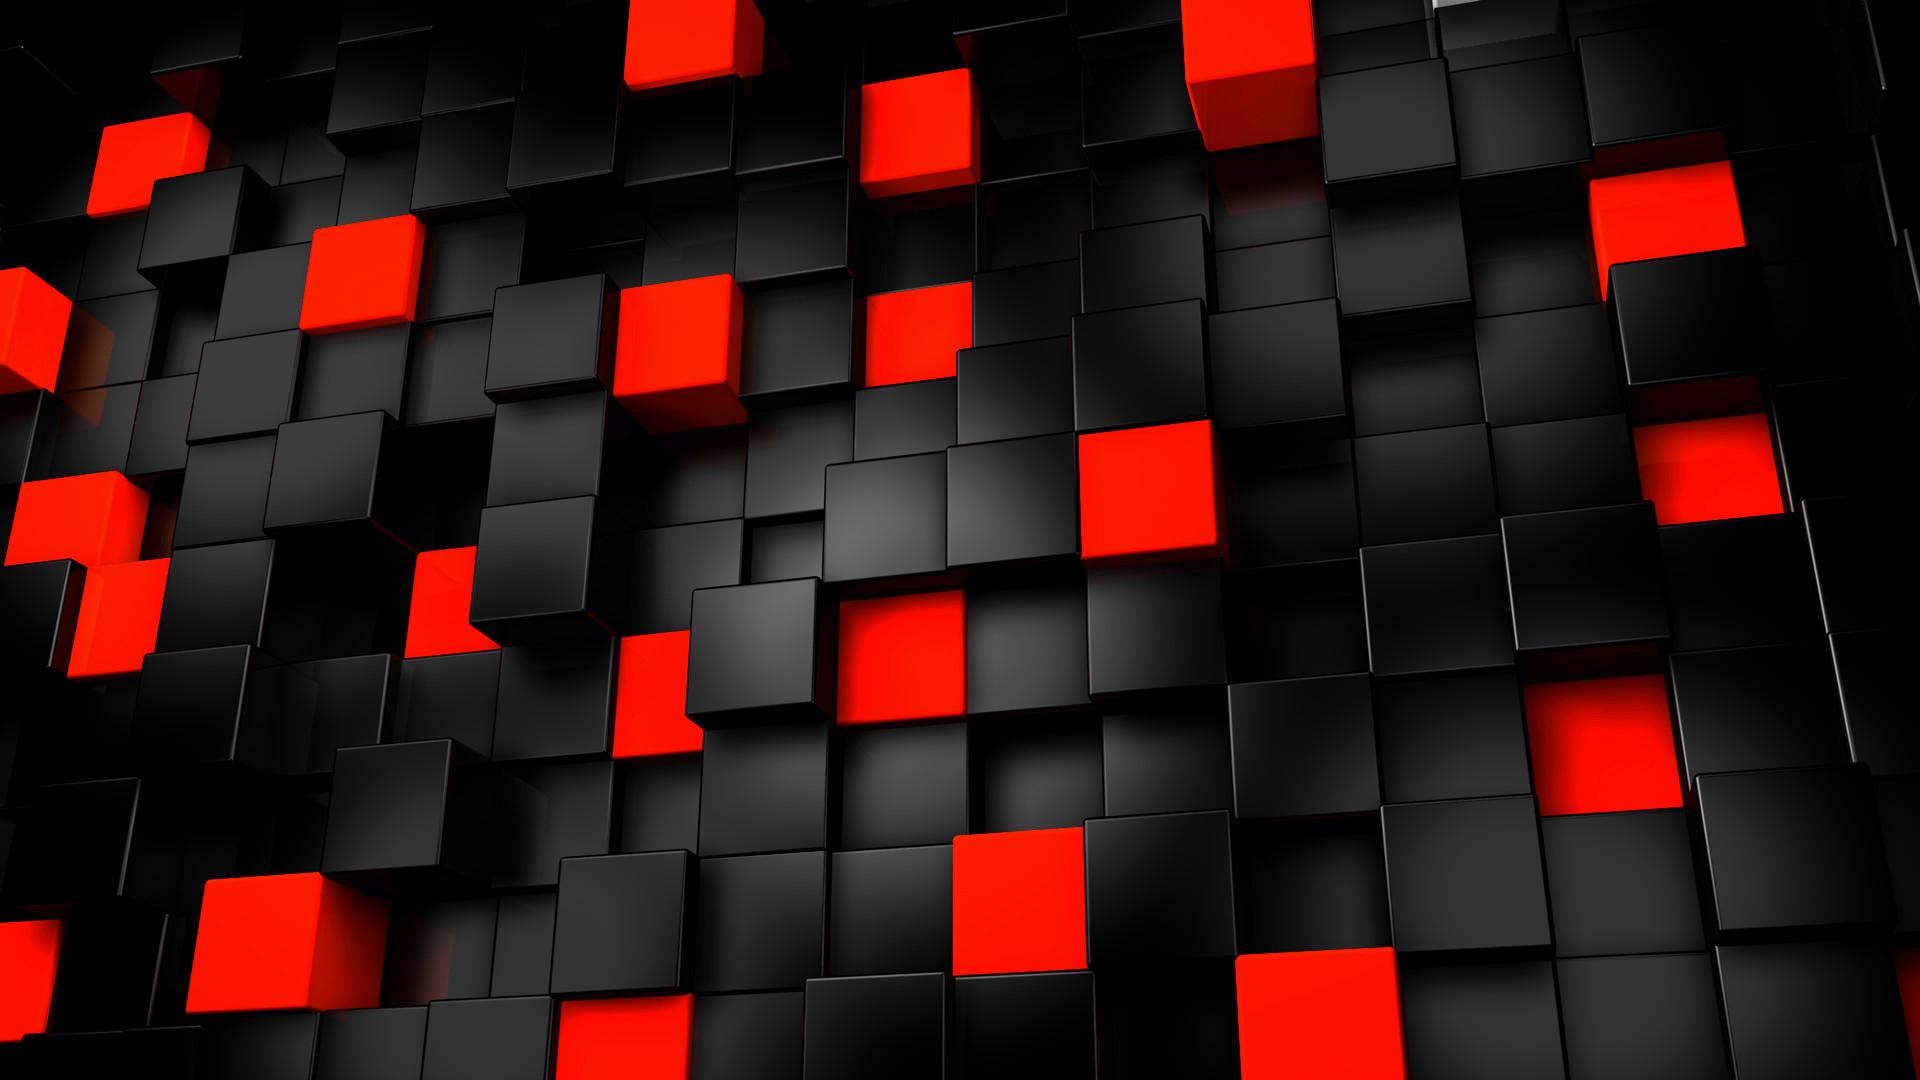 Hd-1080p-Black-And-Red-wallpaper-wp40013379